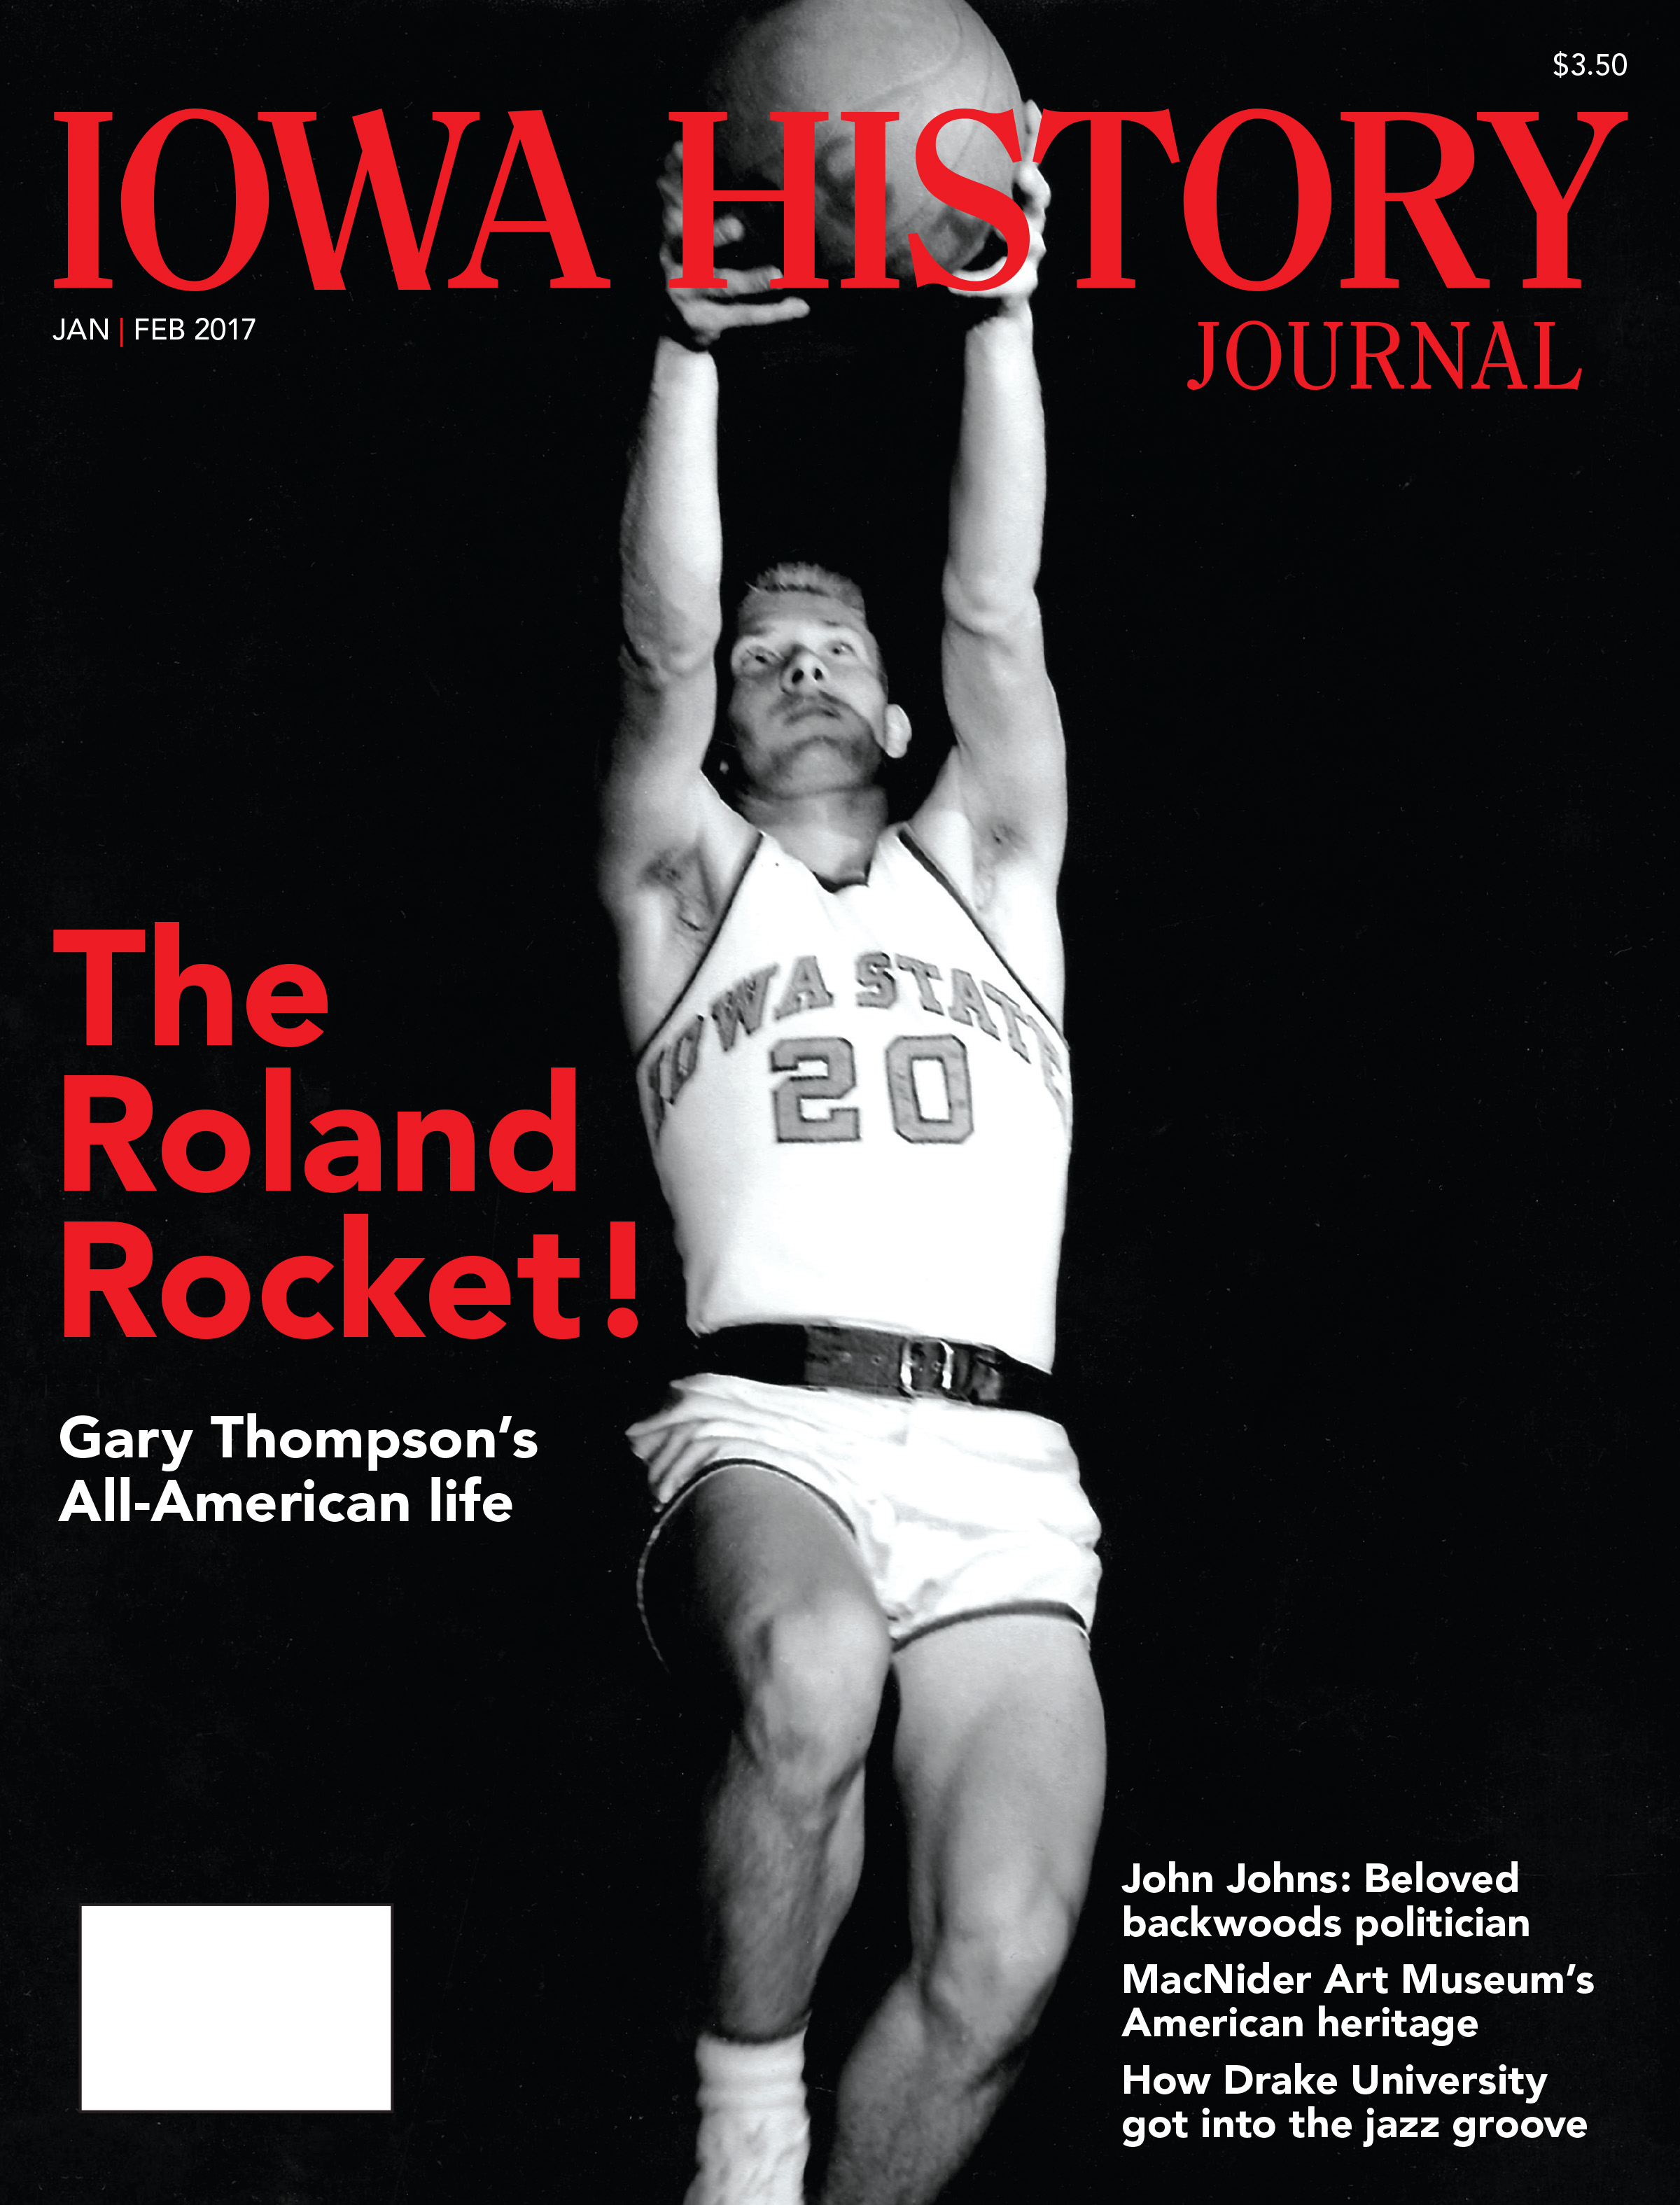 Volume 9, Issue 1  - The Roland Rocket - Gary Thompson